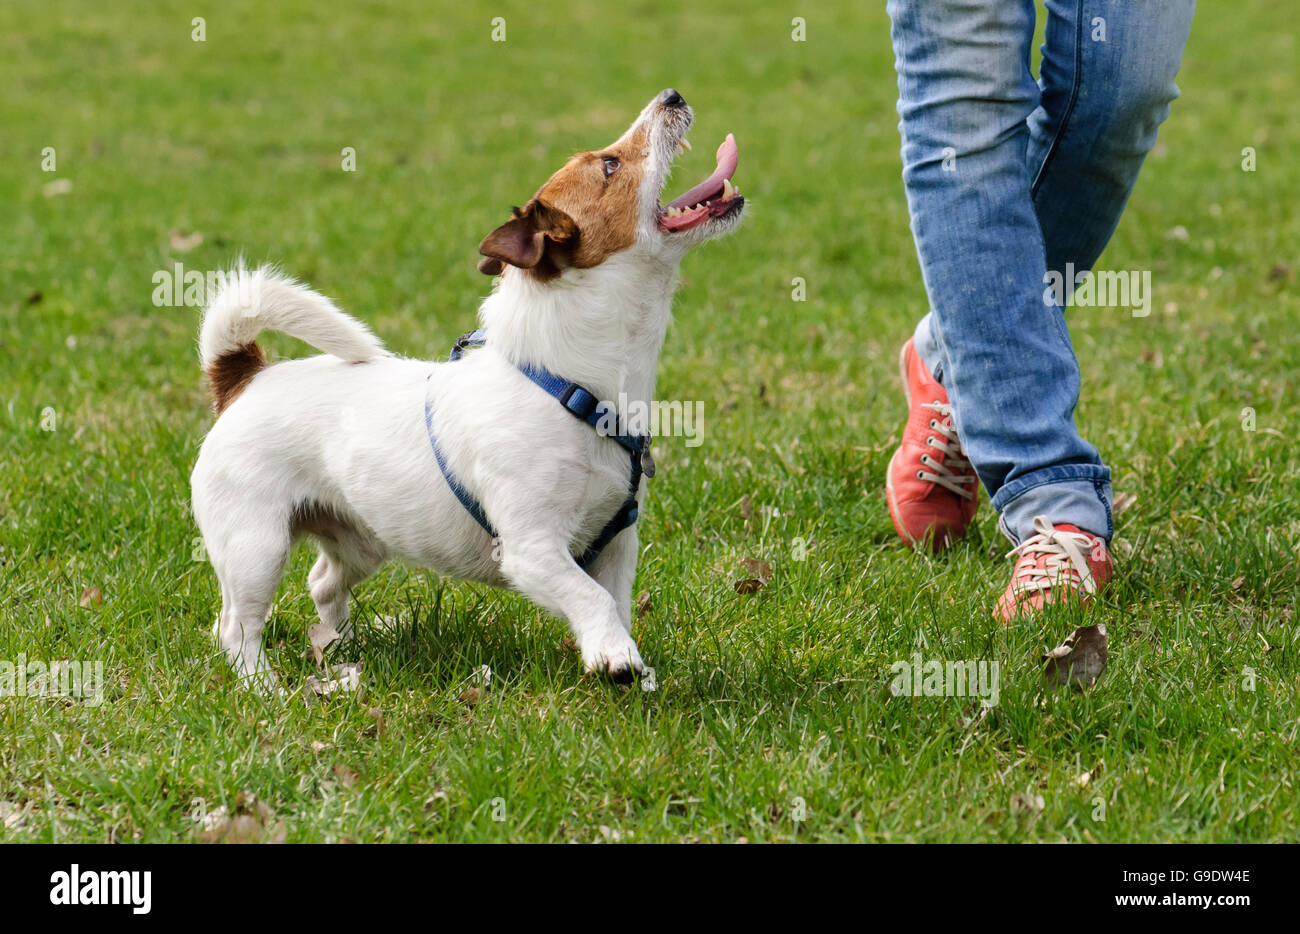 Obedient dog doing walking exercise with owner - Stock Image